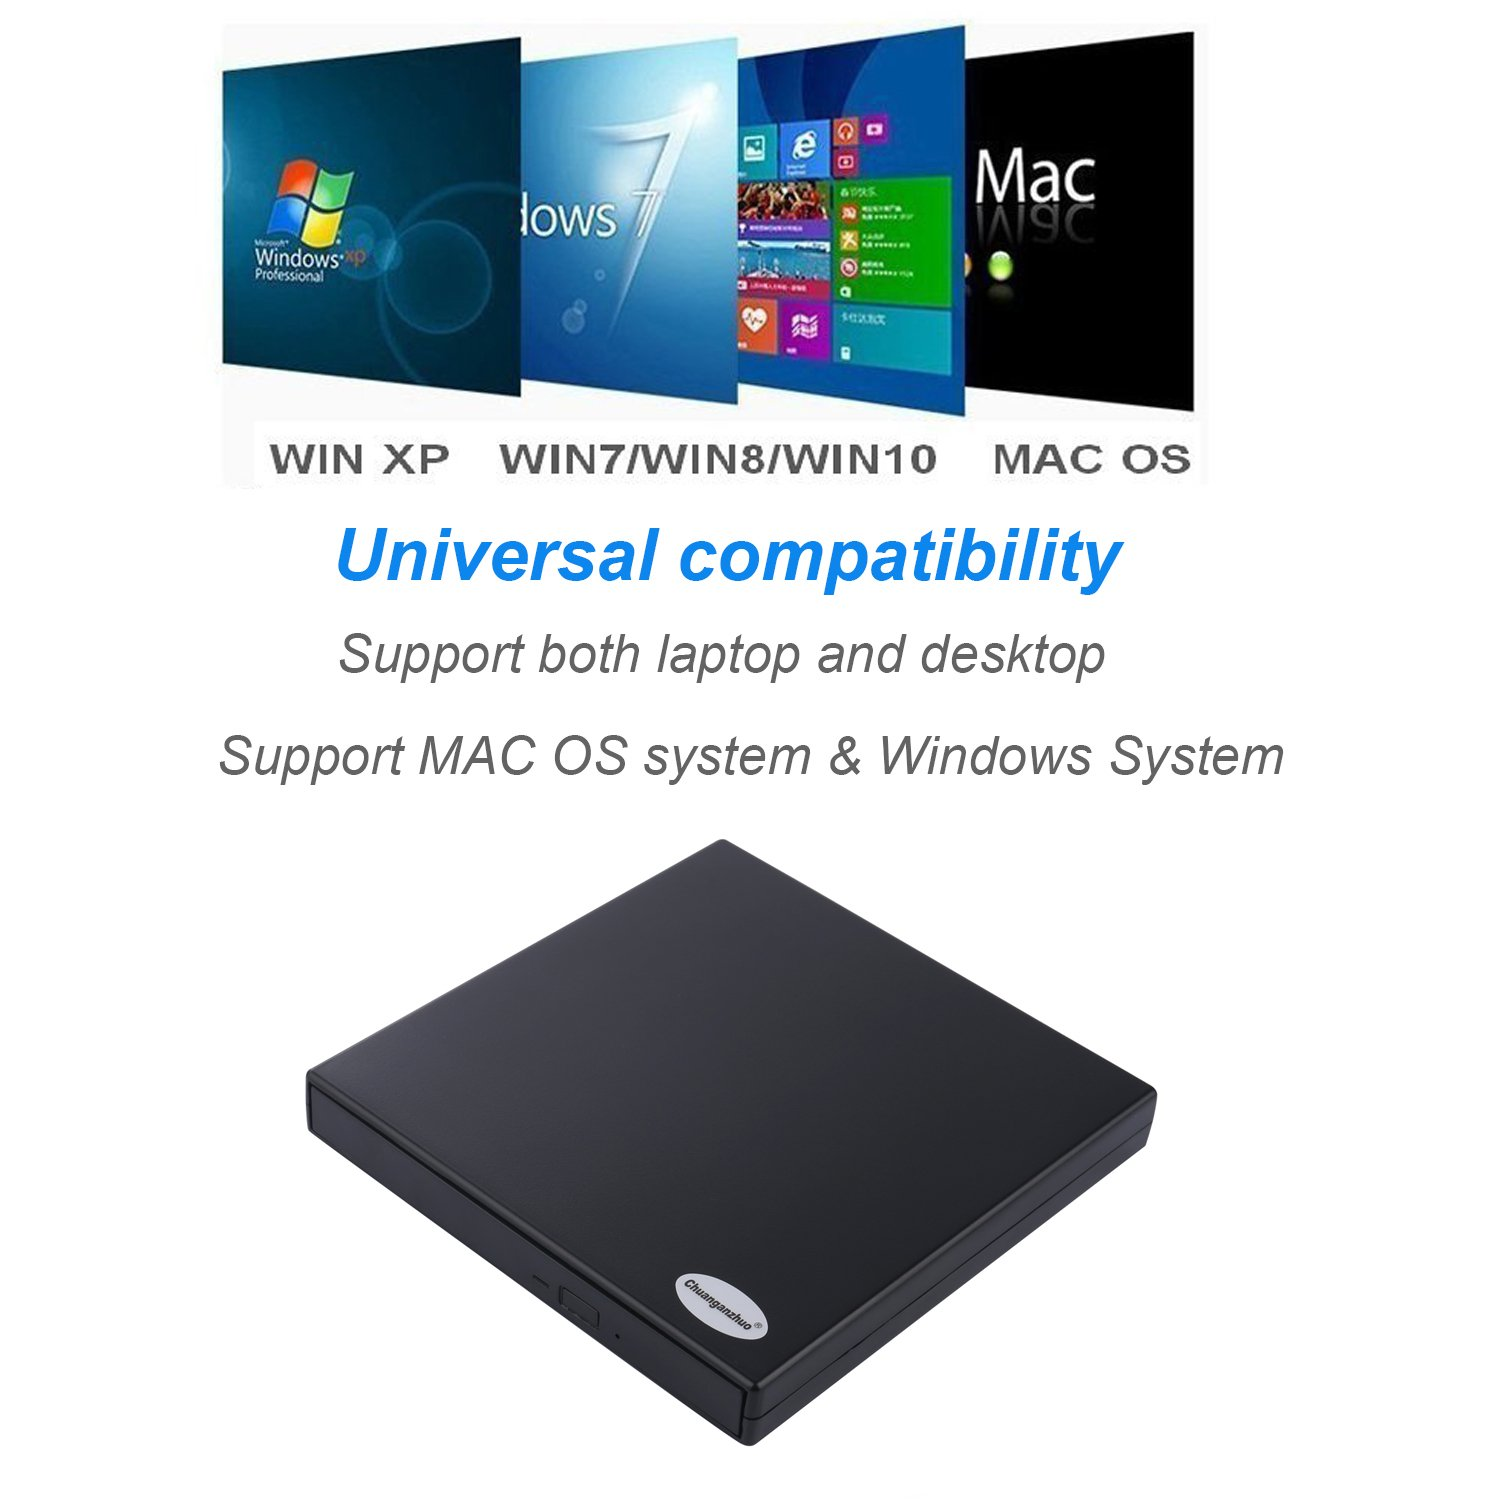 Chuanganzhuo USB 2.0 External DVD Combo CD-RW Burner Drive For Mac,Windows 2000/XP/Vista/7/8/10,Ultra Notebook PC Desktop Computer,Plug and Play,No Need to Install Driver with CD Driver,Black (CD-RW) by Chuanganzhuo (Image #7)